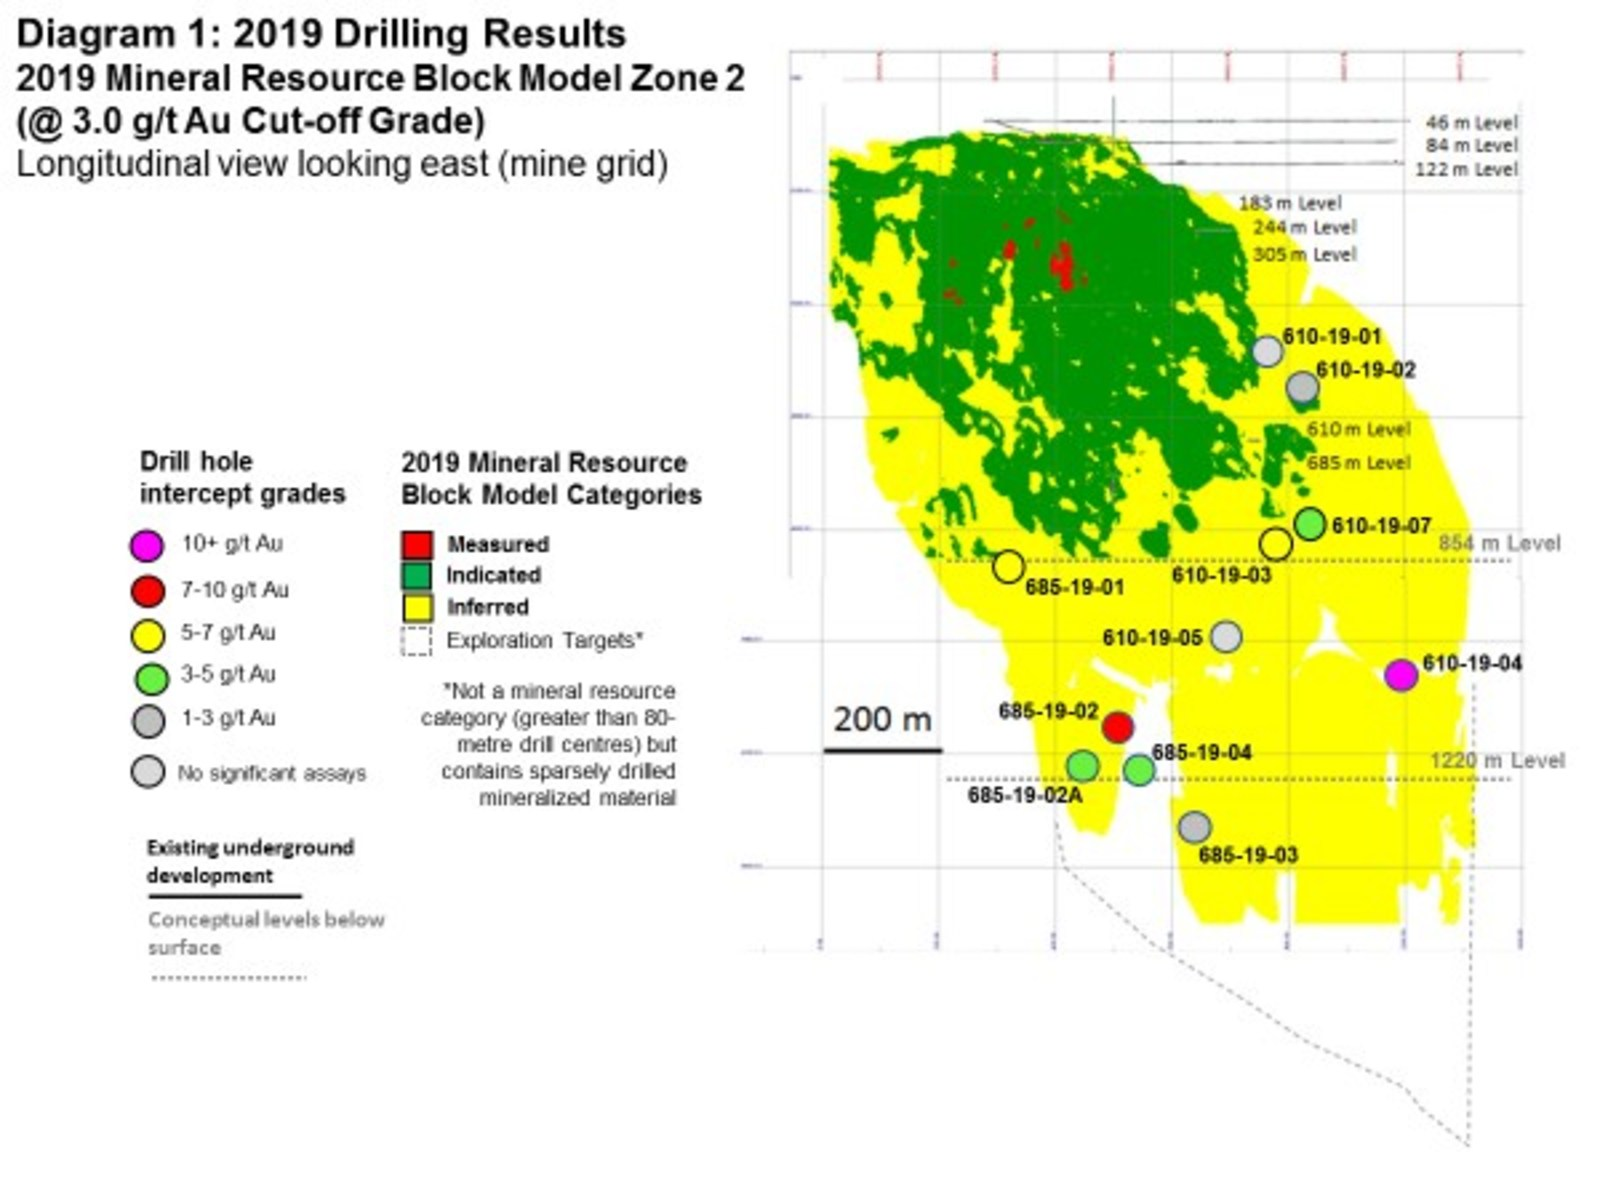 Diagram 1: 2019 Drilling Results - 2019 Mineral Resource Block Model Zone 2